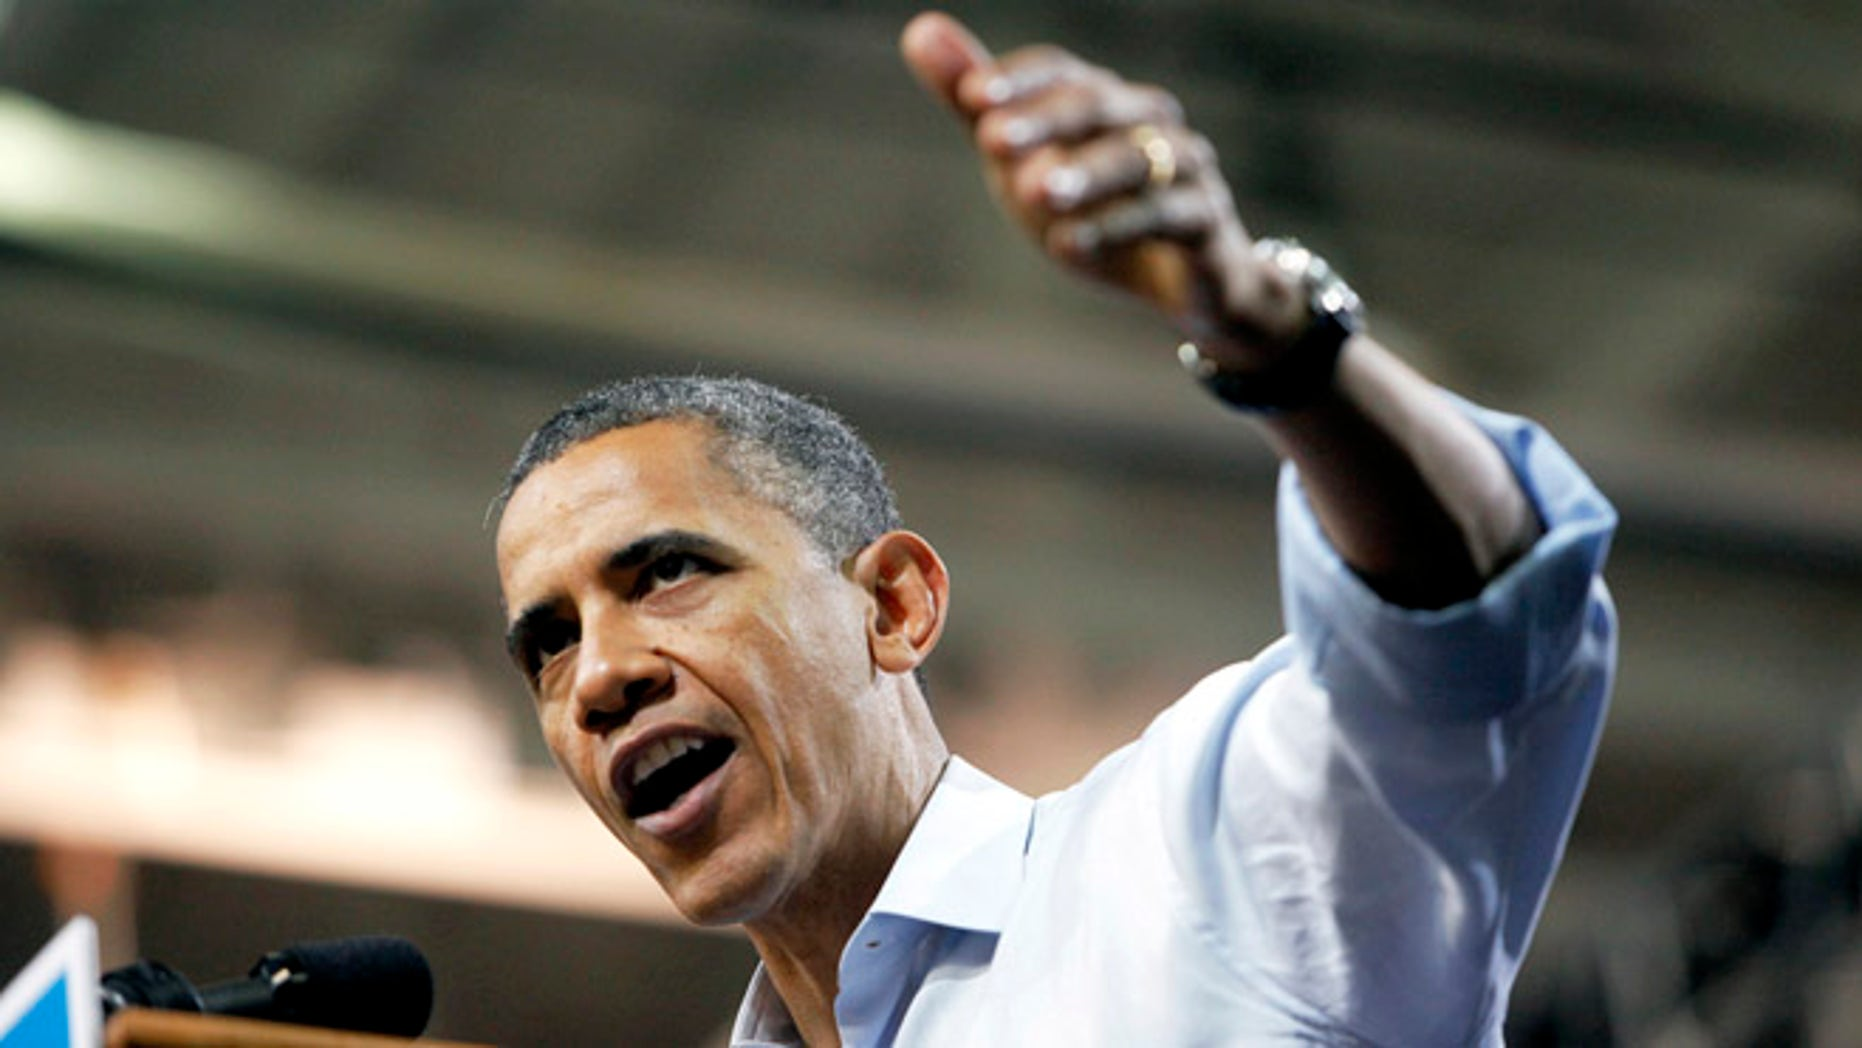 May 5, 2012: President Obama speaks during a campaign rally at the Siegel Center in Richmond, Va.